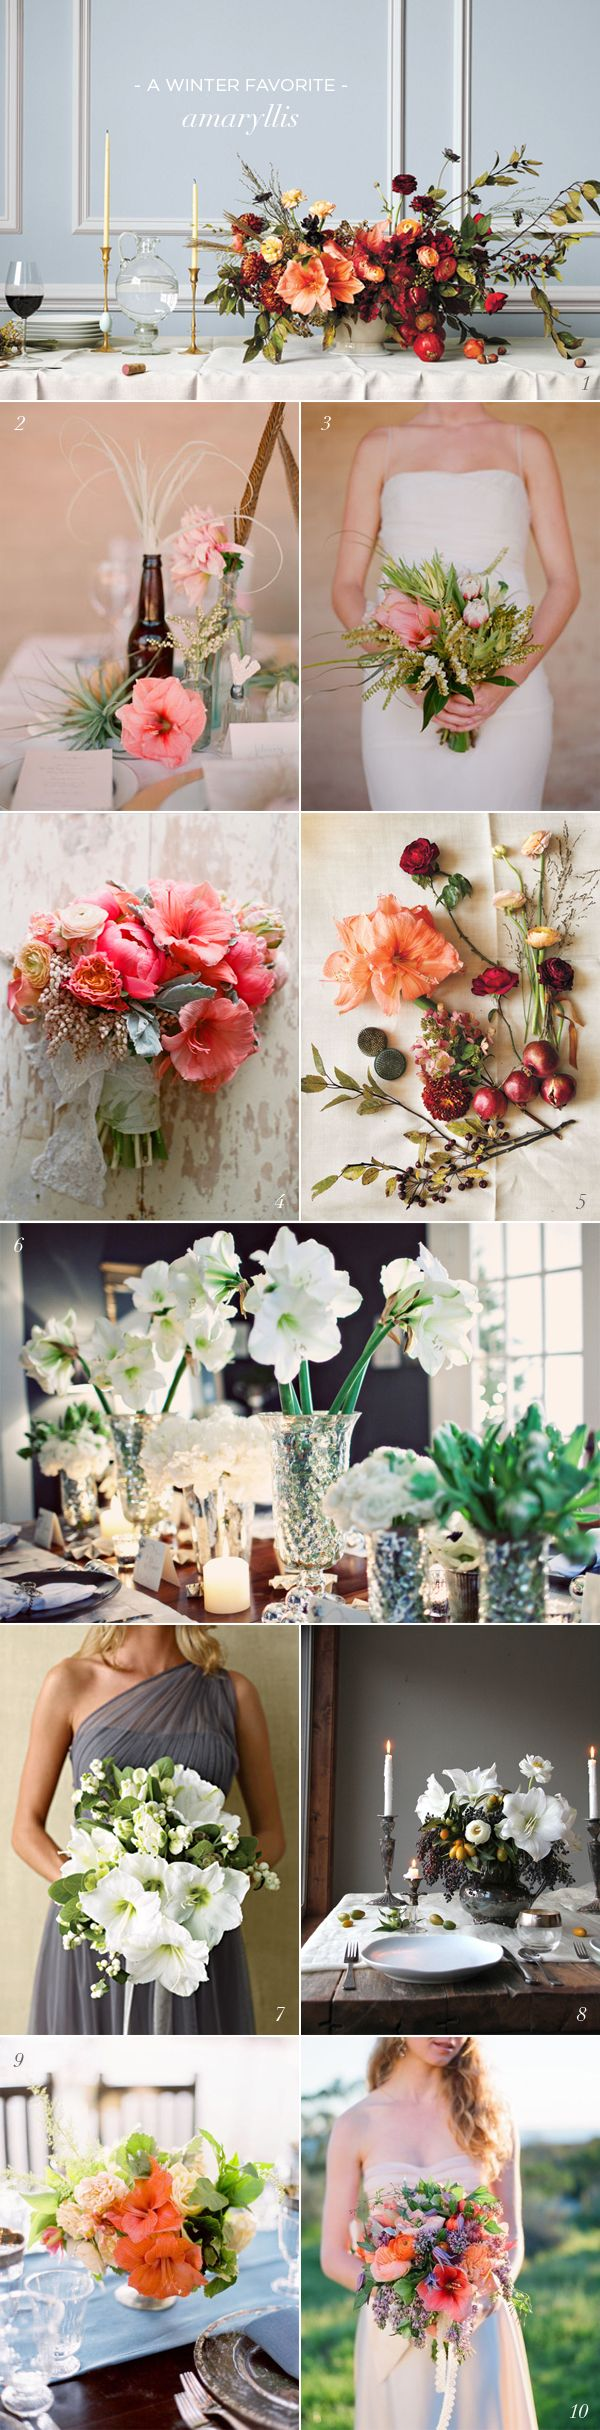 Amaryllis Wedding Flower inspiration board - casual elegance for wedding bouquets